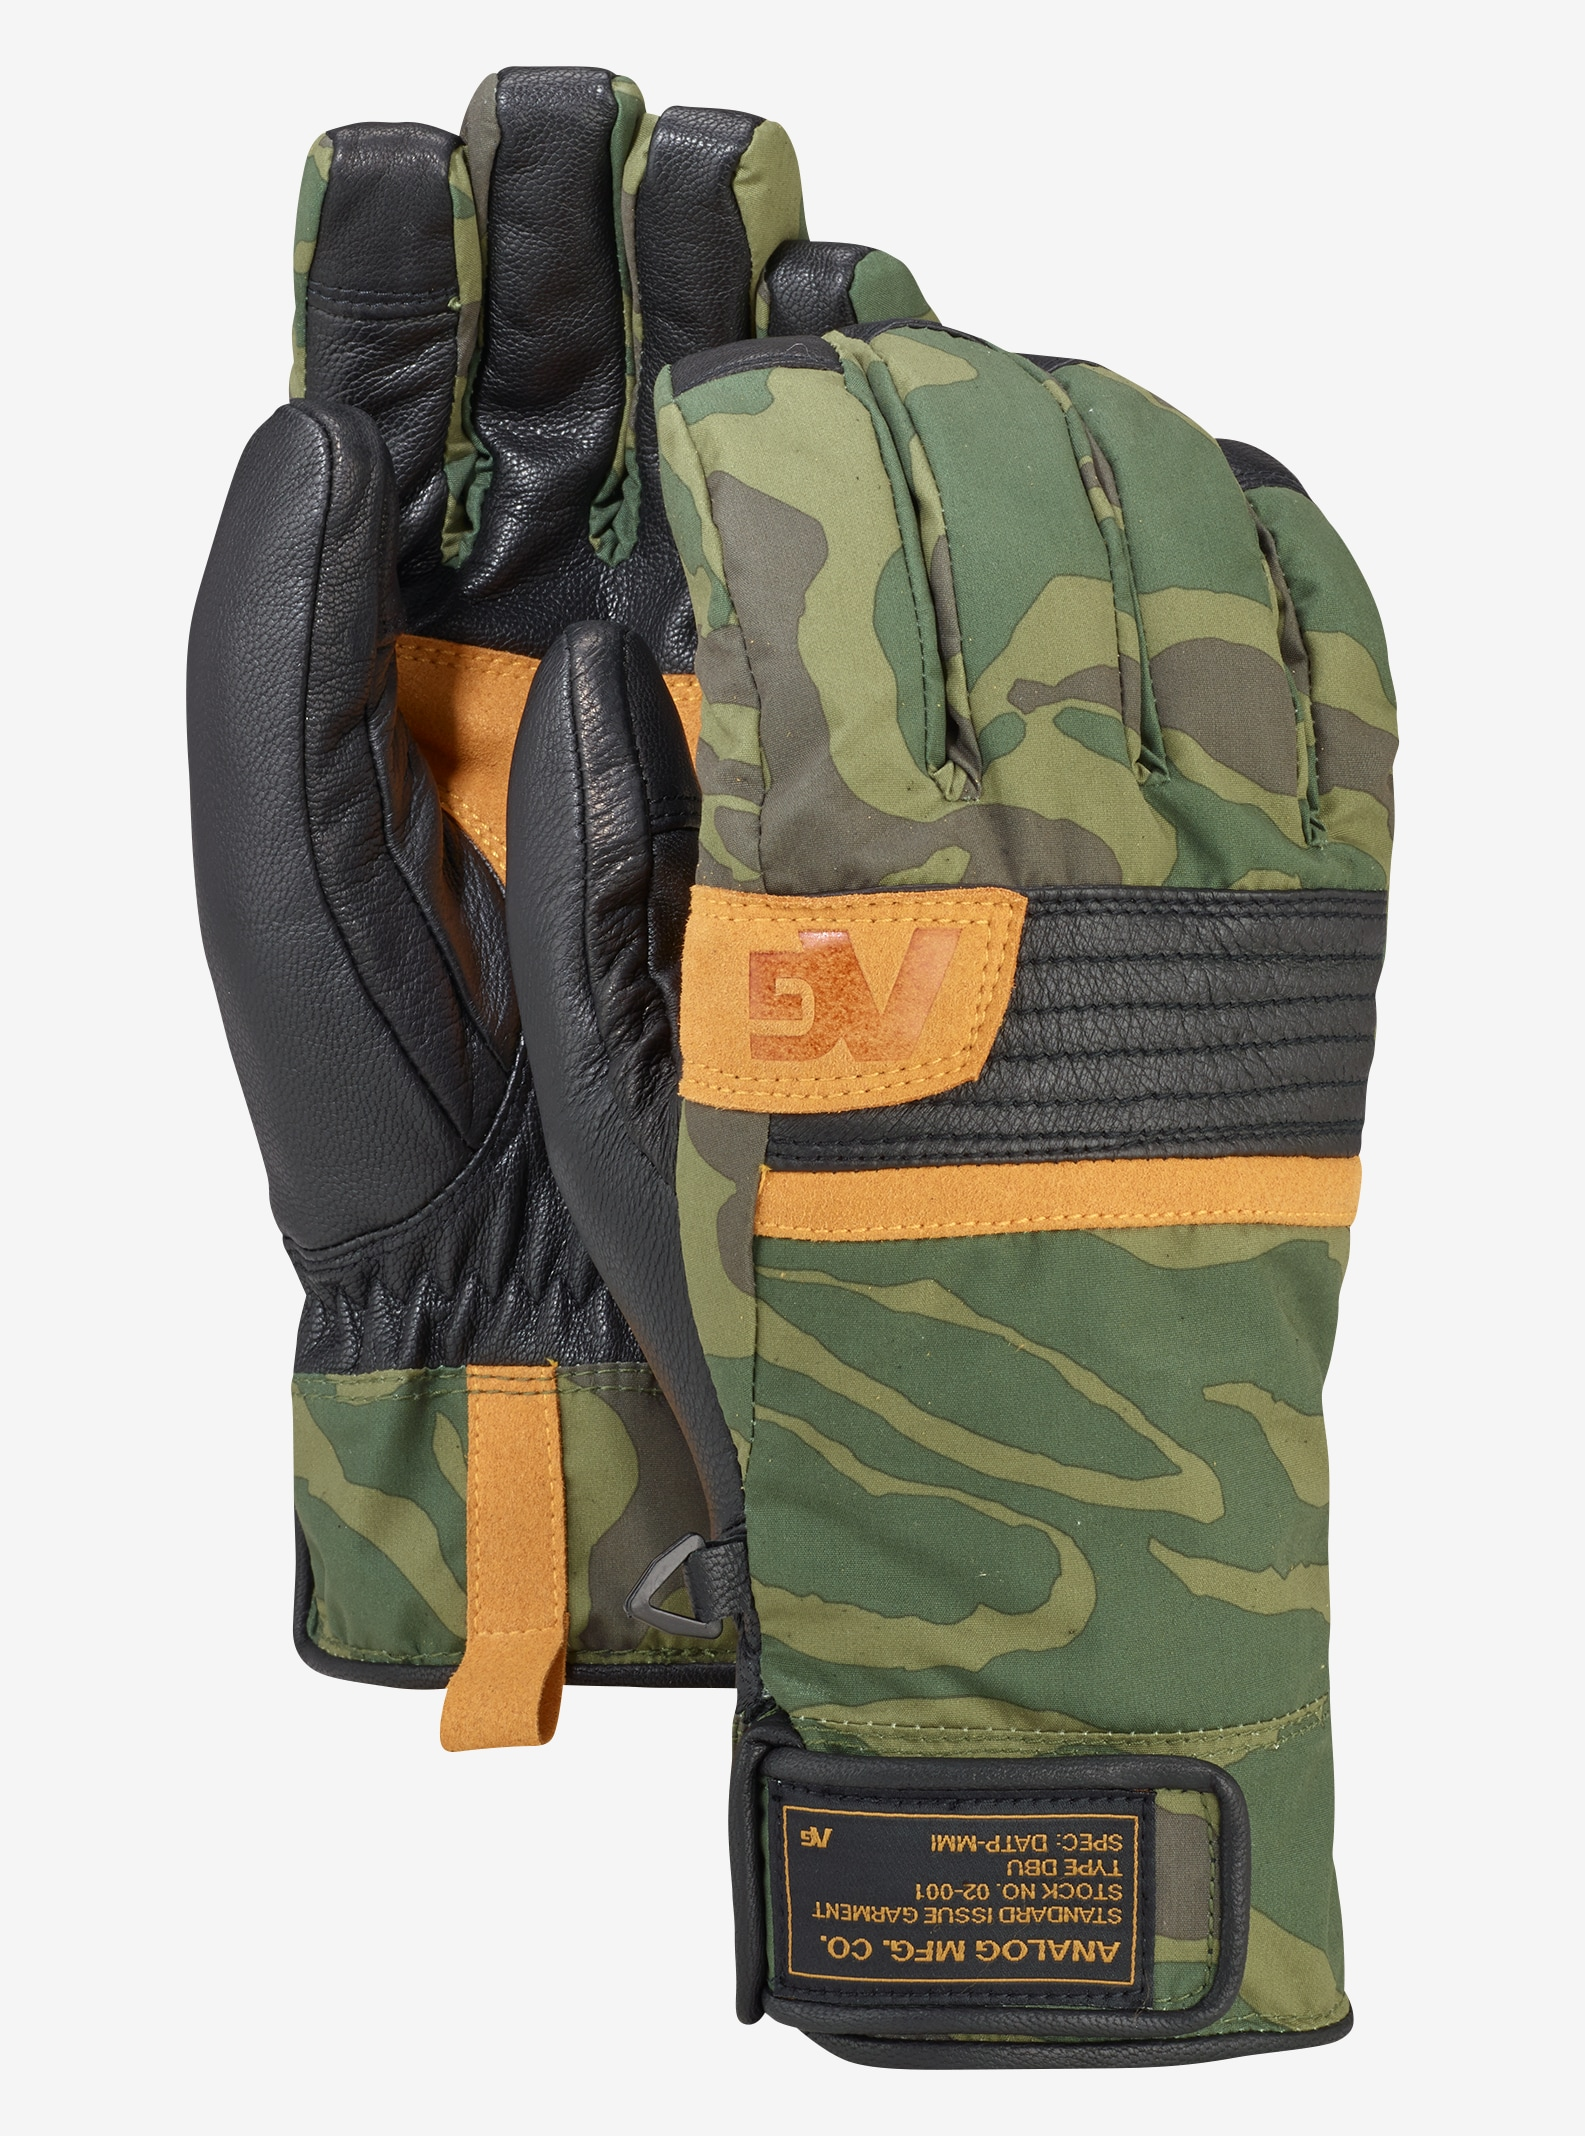 Men's Analog Diligent Glove shown in Rifle Noodle Camo